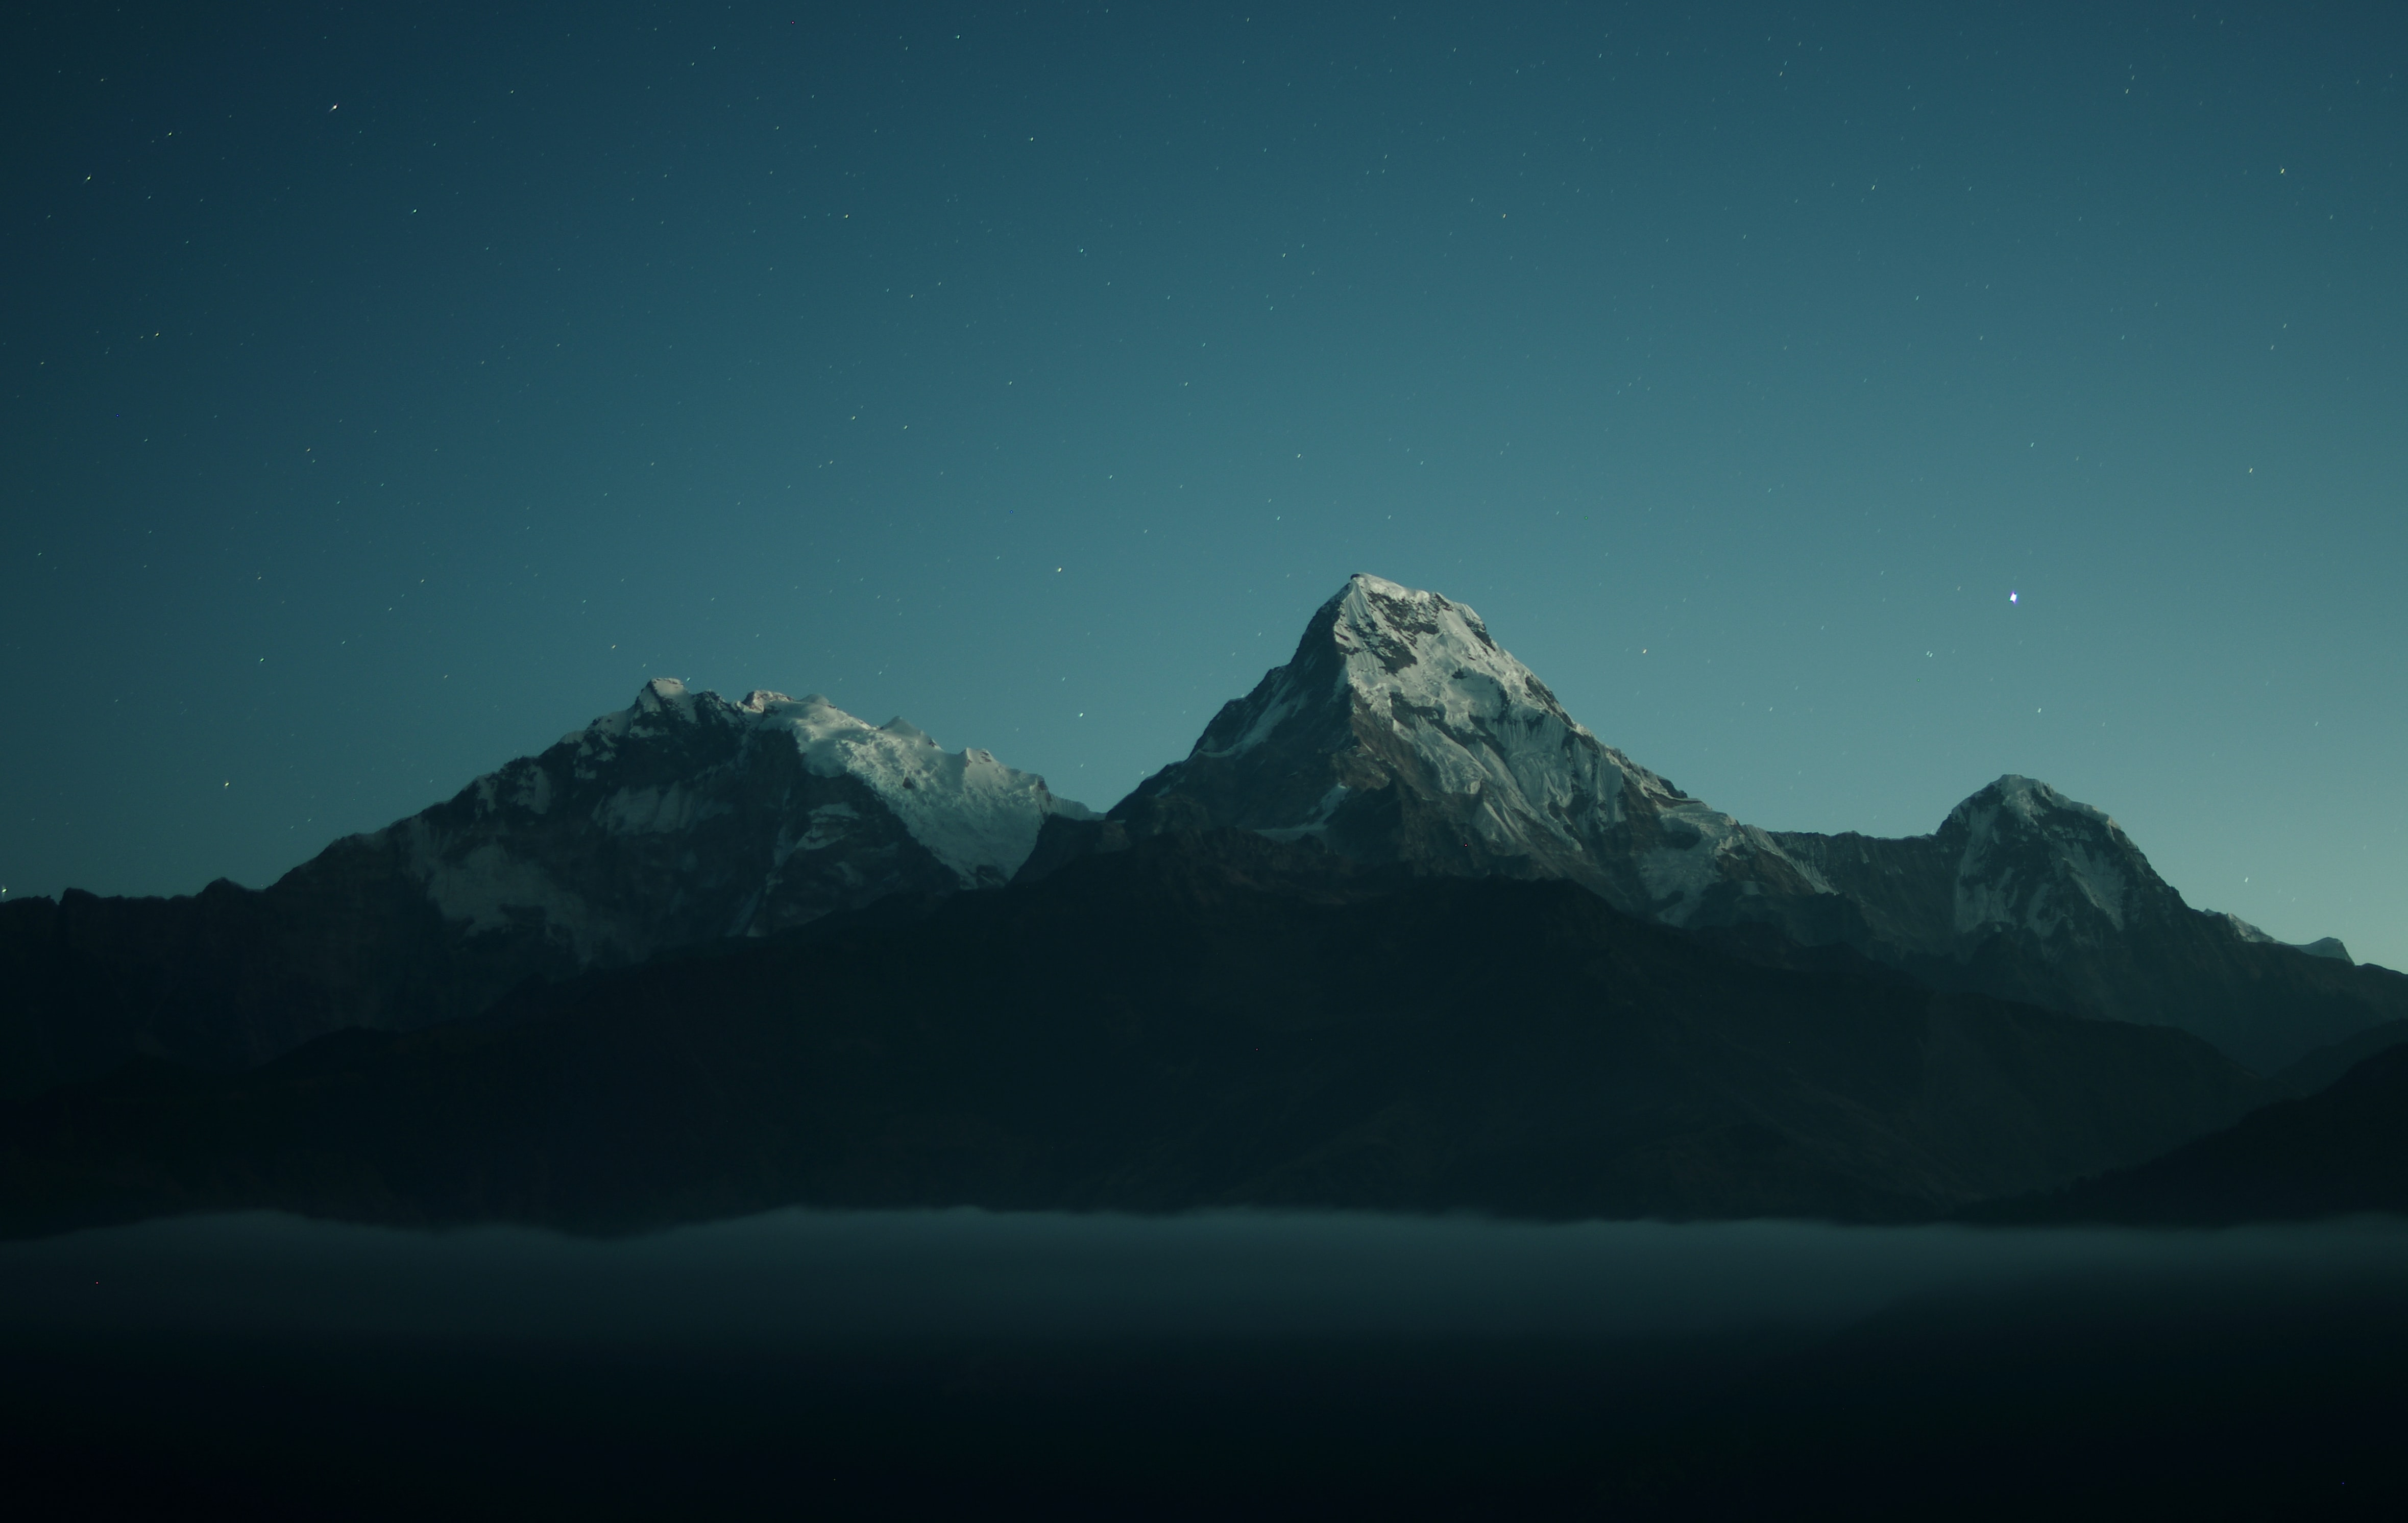 silhouette of mountains during nigh time photography